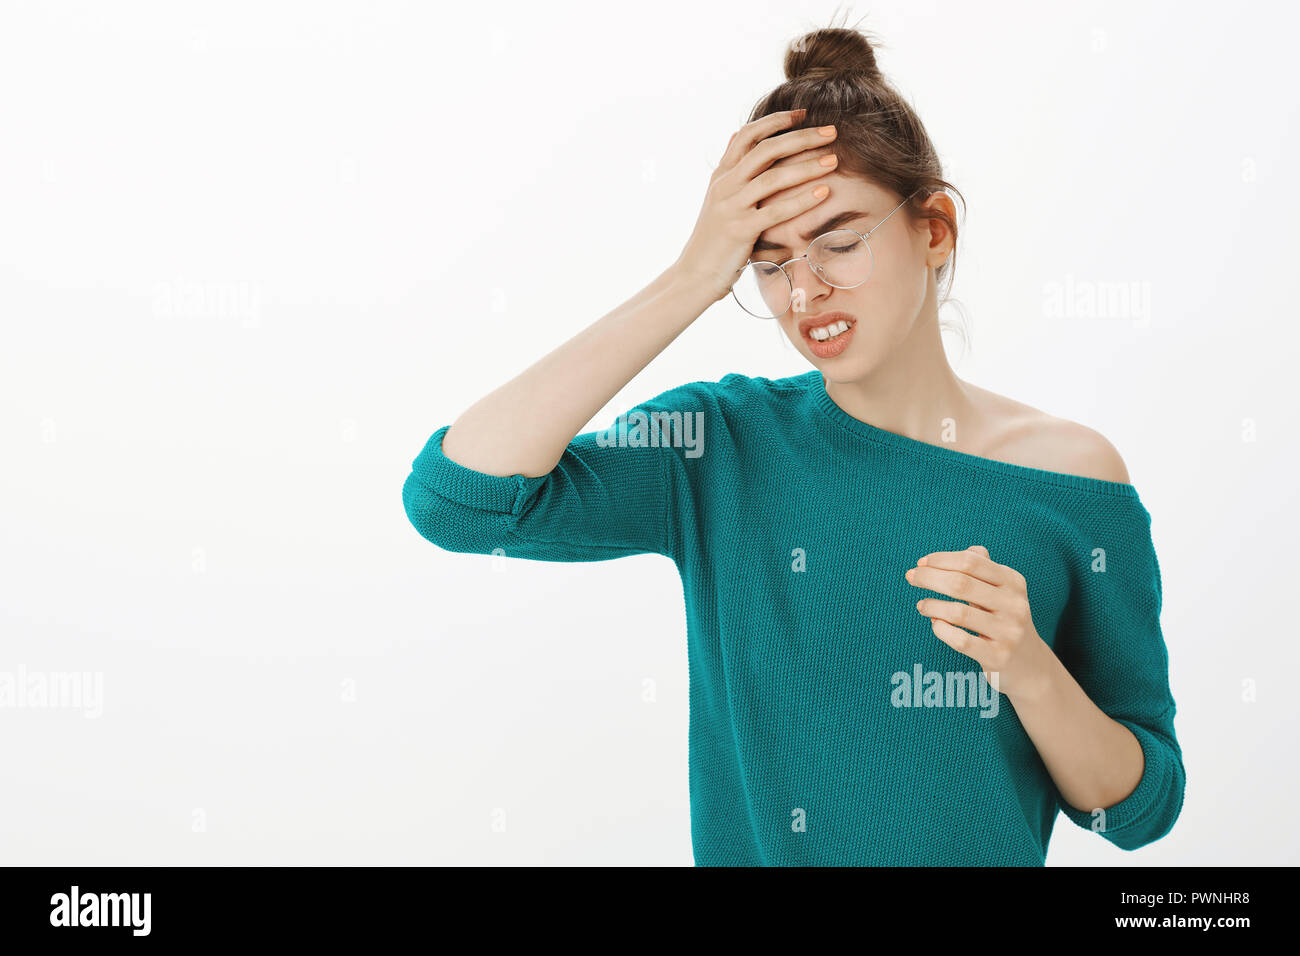 Bring me painkillers, head killing me. Intense displeased cute businesswoman in glasses and loose sweater, frowning, clenching teeth and holding hand on forehead, feeling headache or migraine - Stock Image